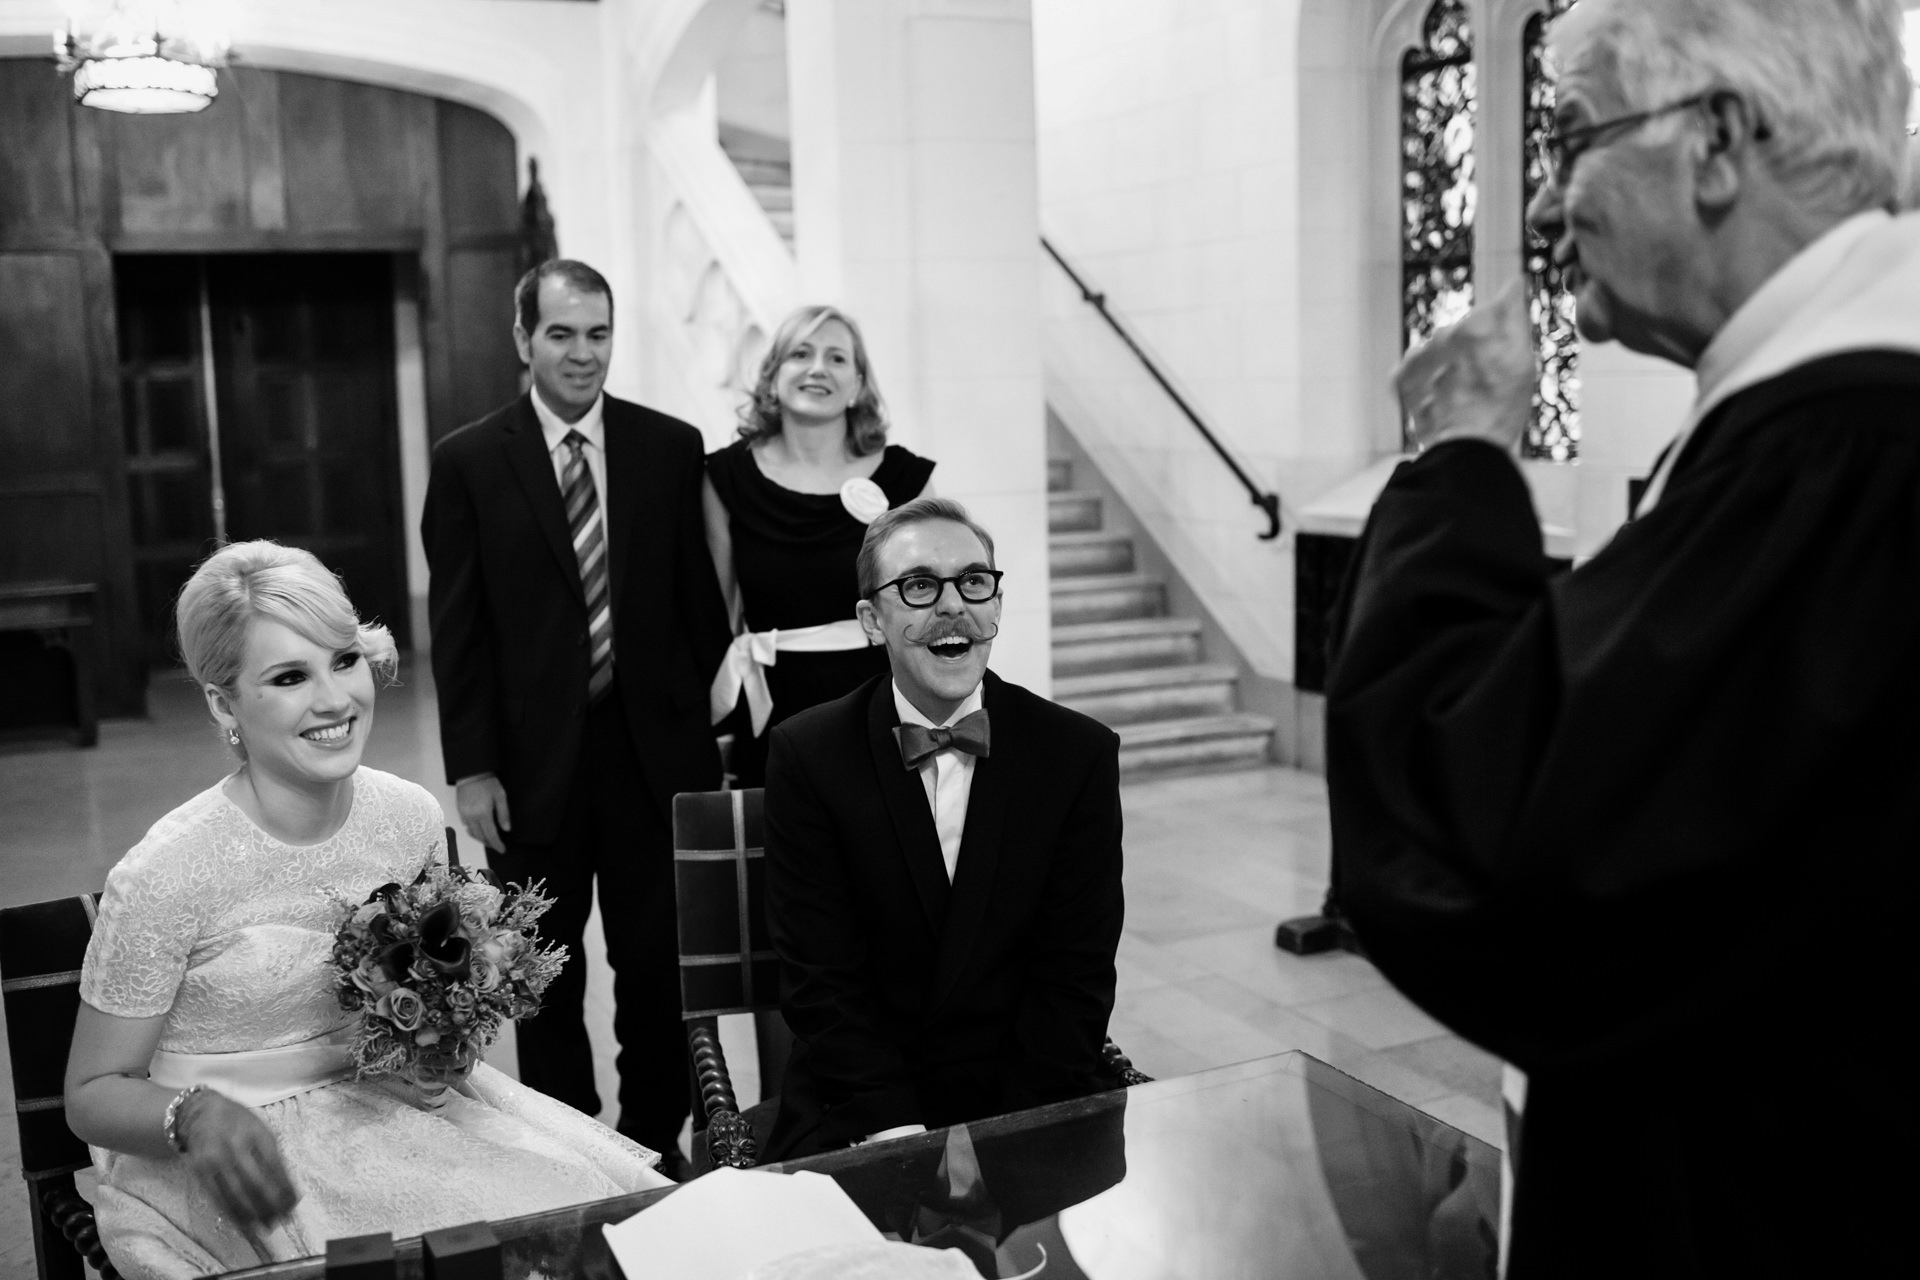 Paris, France Elopement Ceremony Photos | The couple's attendant breaks the mood with a story